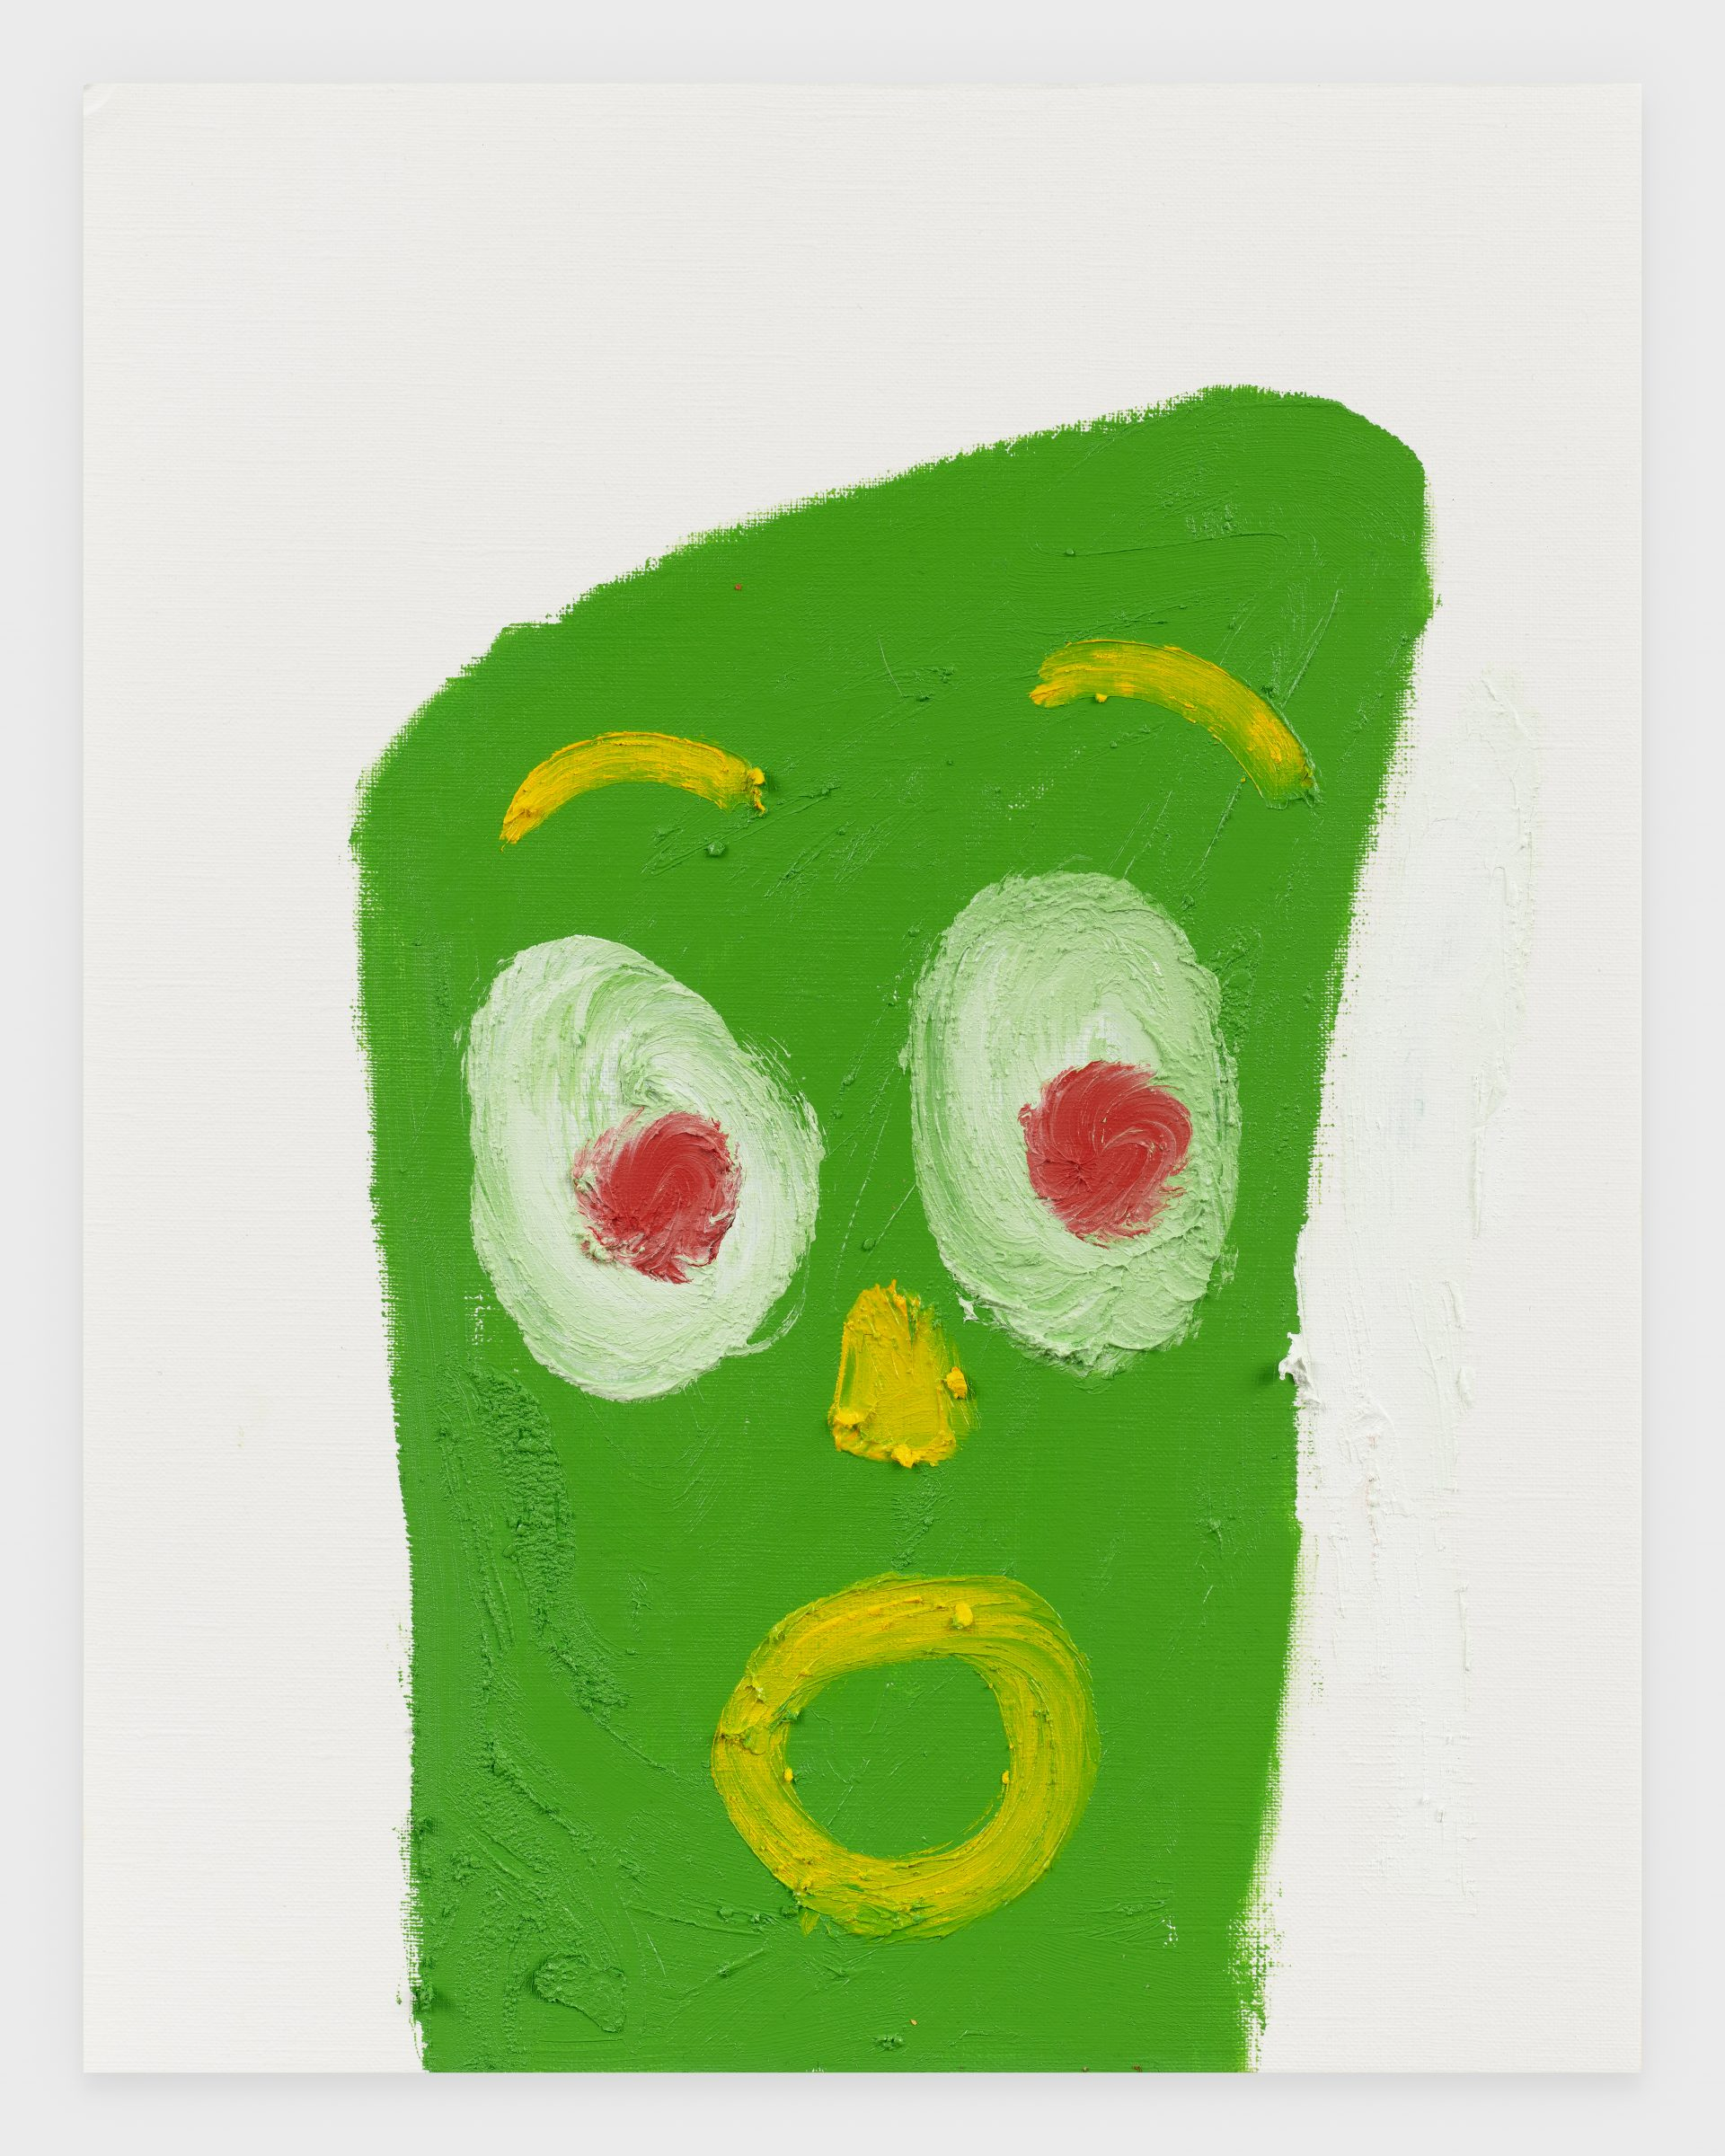 Gumby, 2020, Oil stick on archival paper, 11 x 14 inches